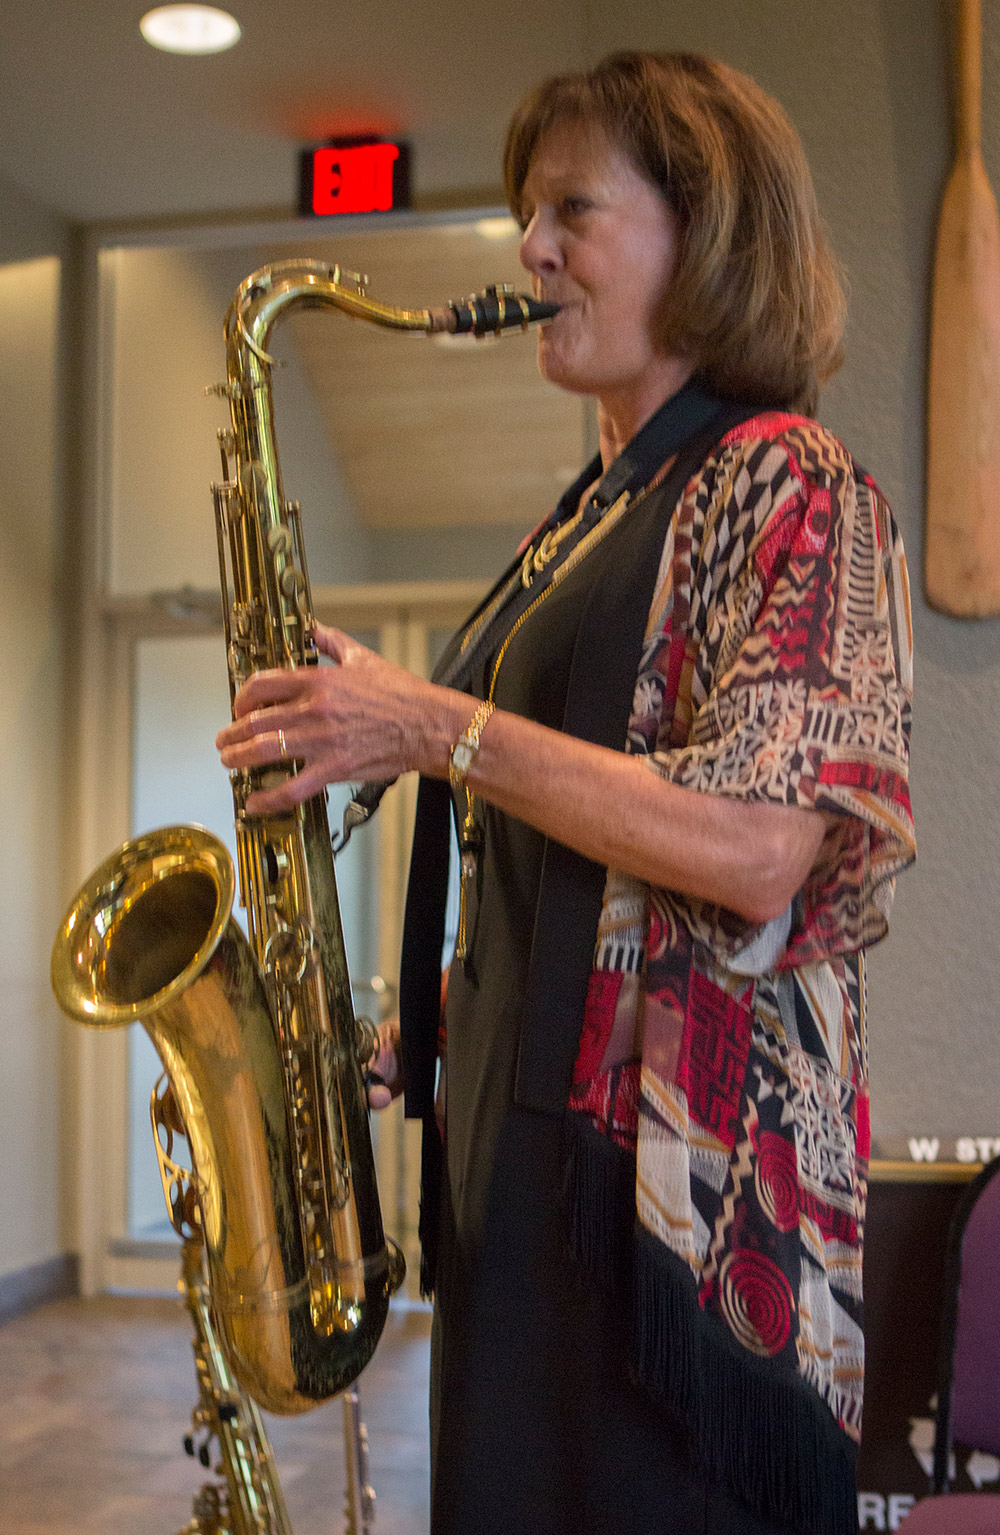 Music provided by Laurie Sears